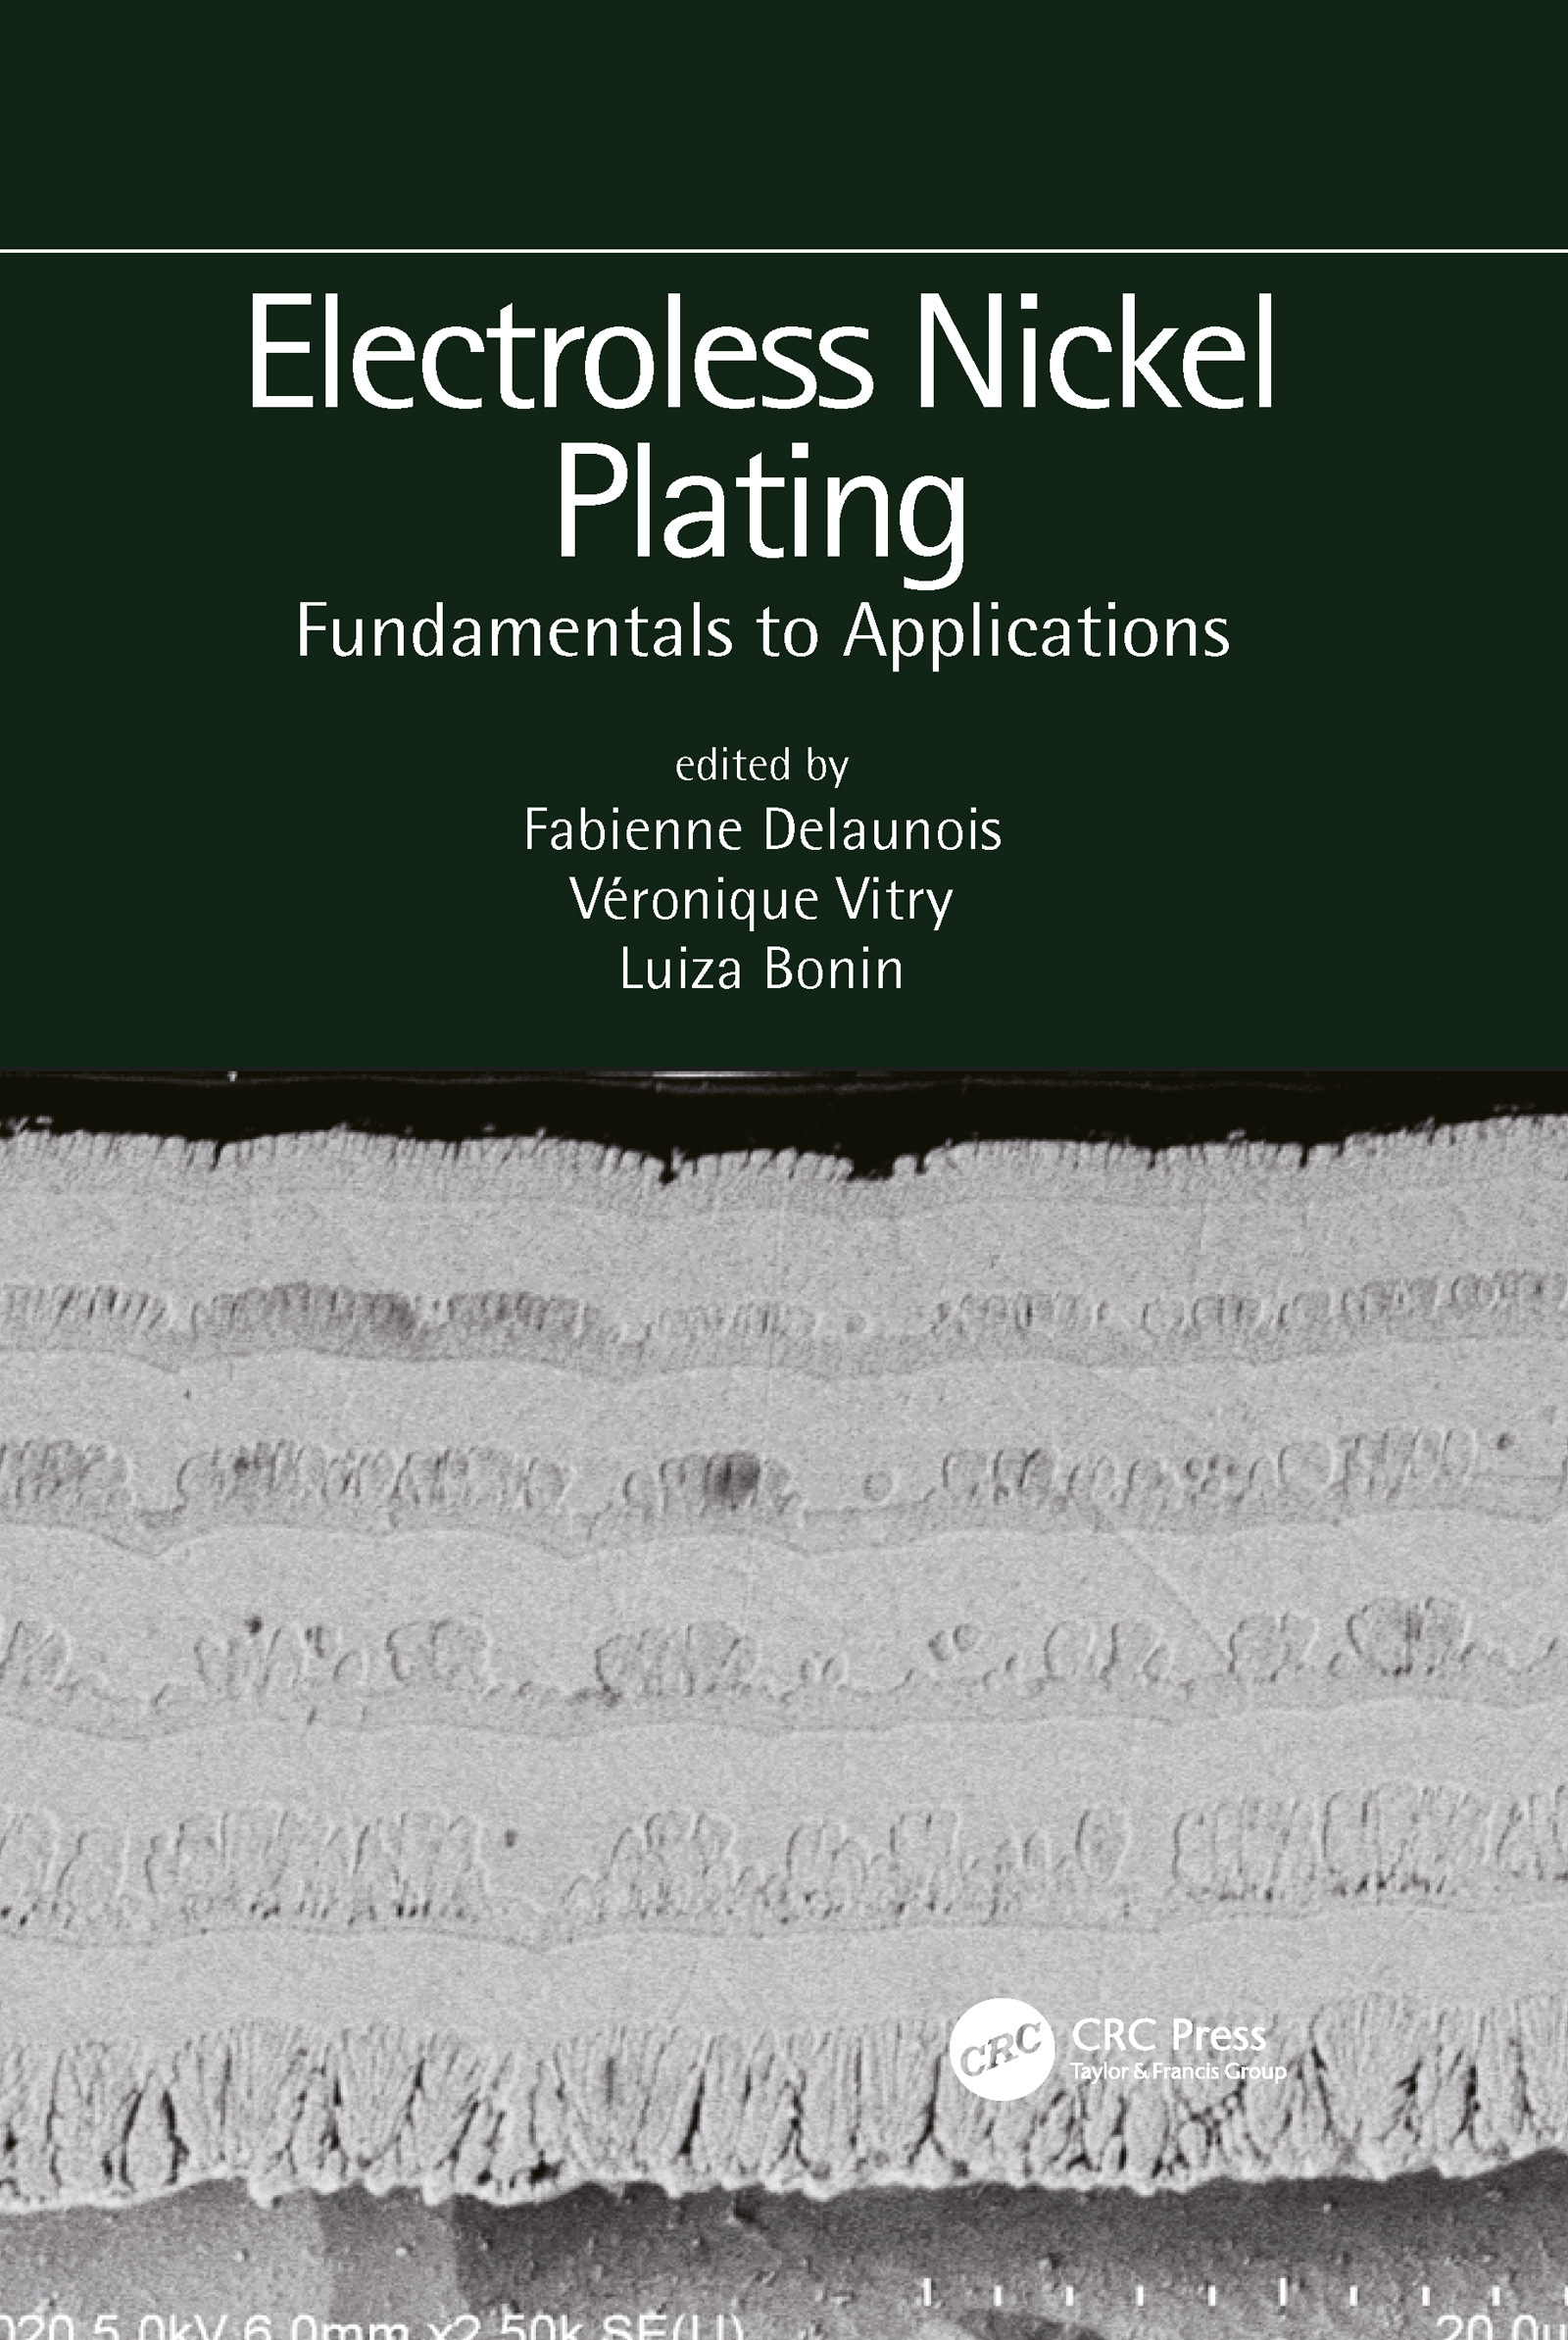 Electroless Nickel Plating: Fundamentals to Applications